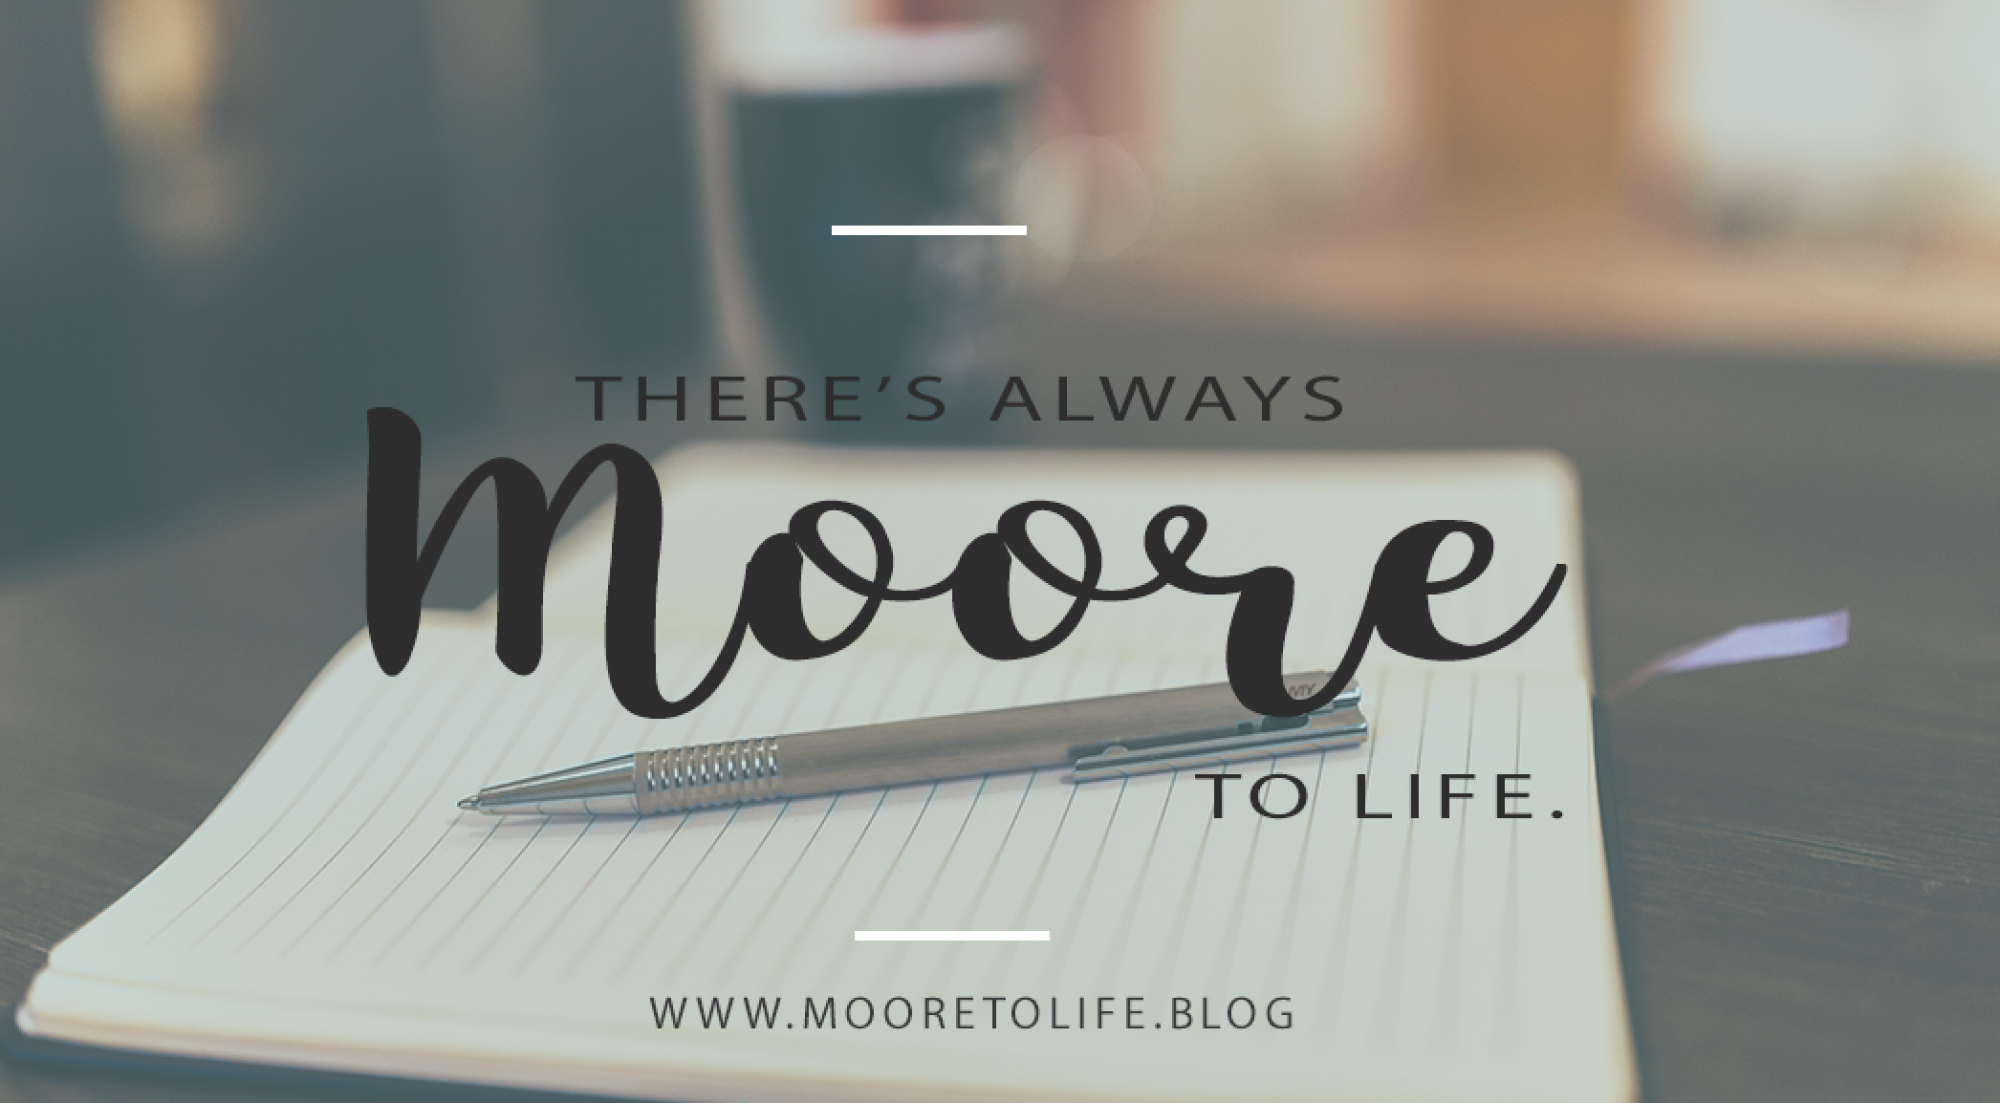 {Moore} to Life